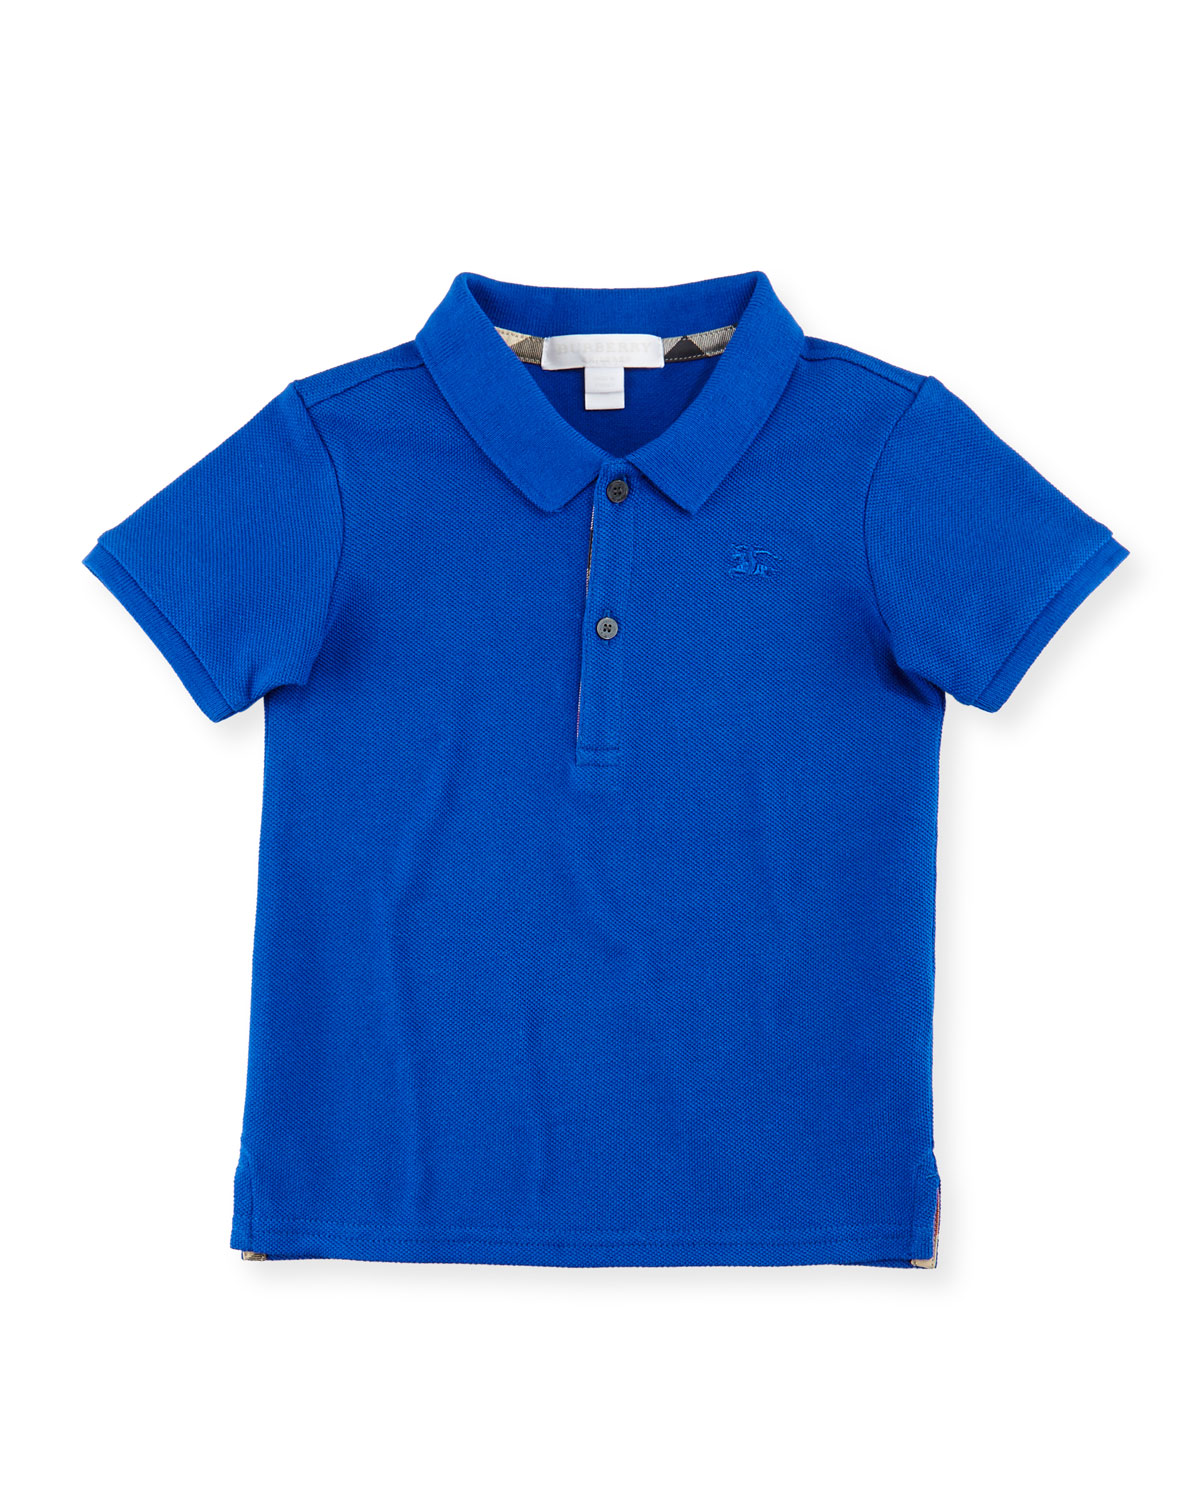 Palmer Short-Sleeve Pique Cotton Polo Shirt, Blue, Size 6M-3